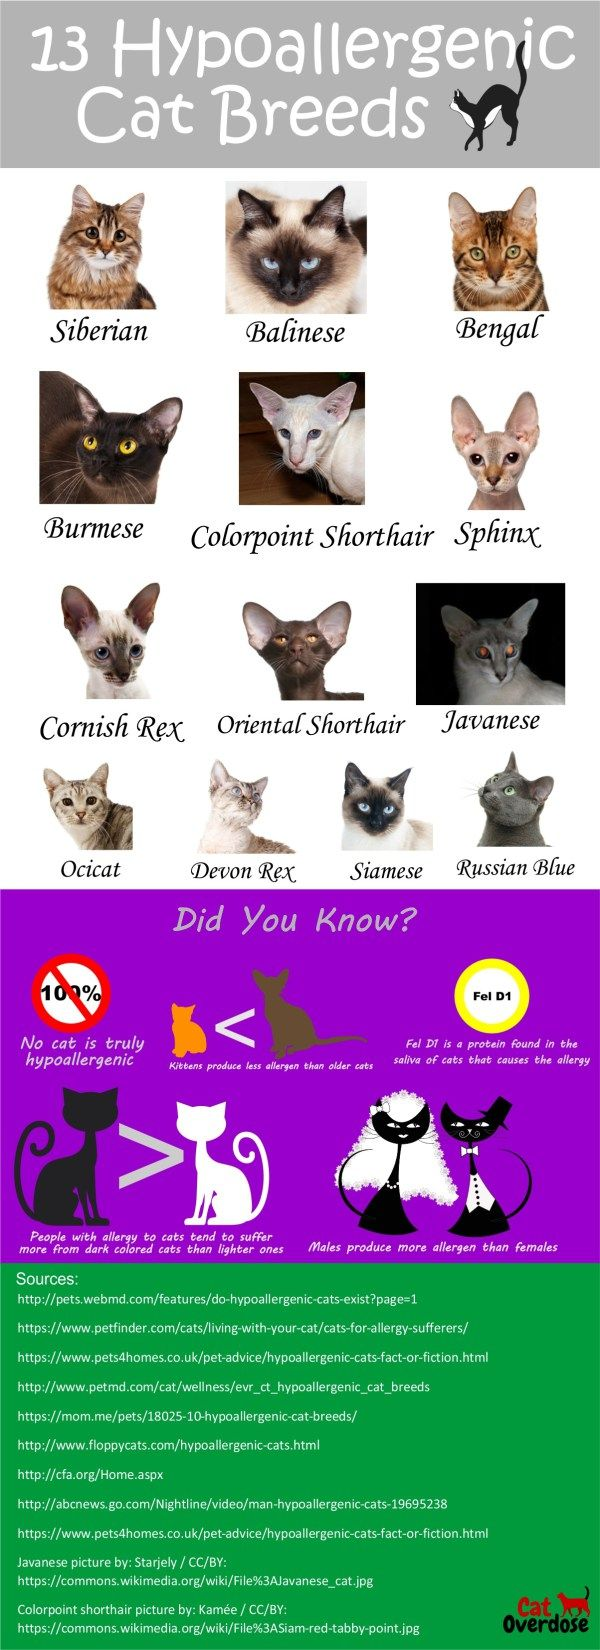 Love cats but allergic to them? check this 12 hypoallergenic cat breeds.. you might find one that is right for you!  https://catoverdose.com/hypoallergenic-cat-breeds/